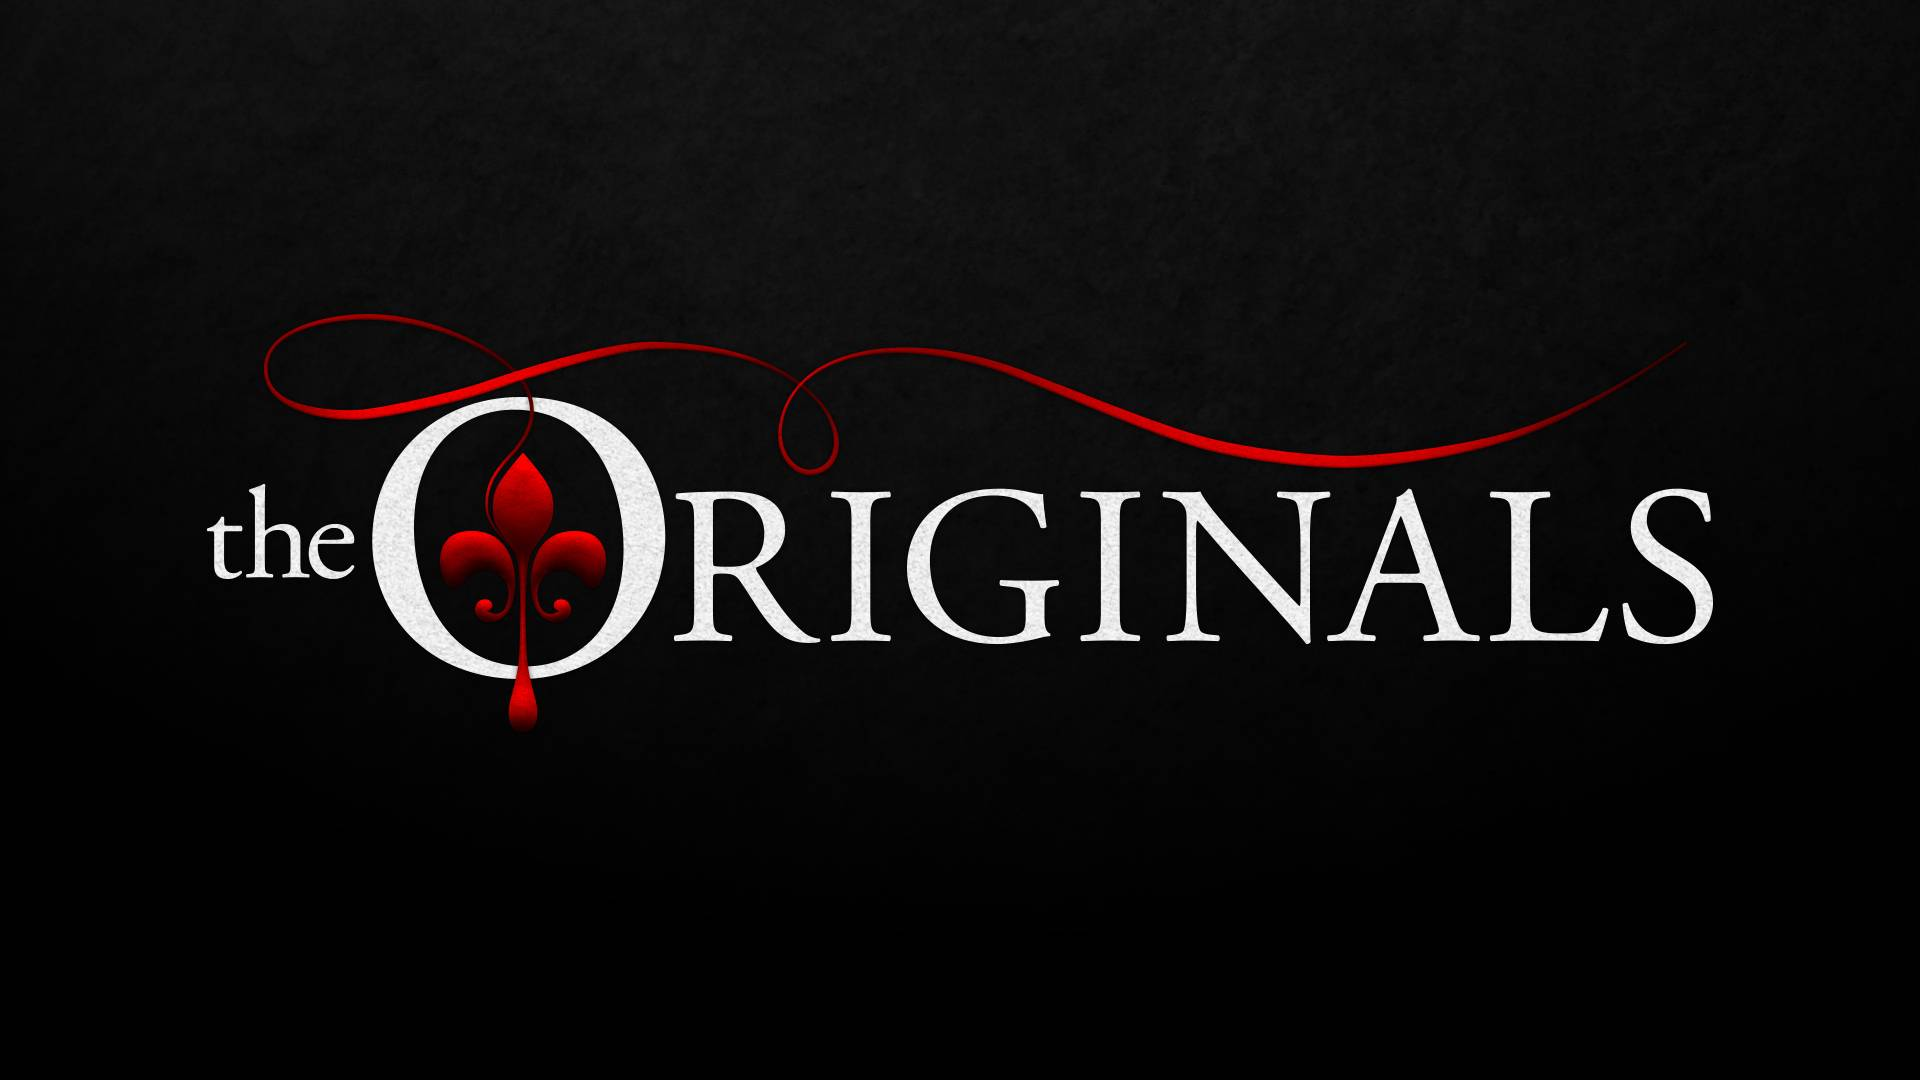 Watch The Originals Season 4 Live Stream | The Originals Watch Online